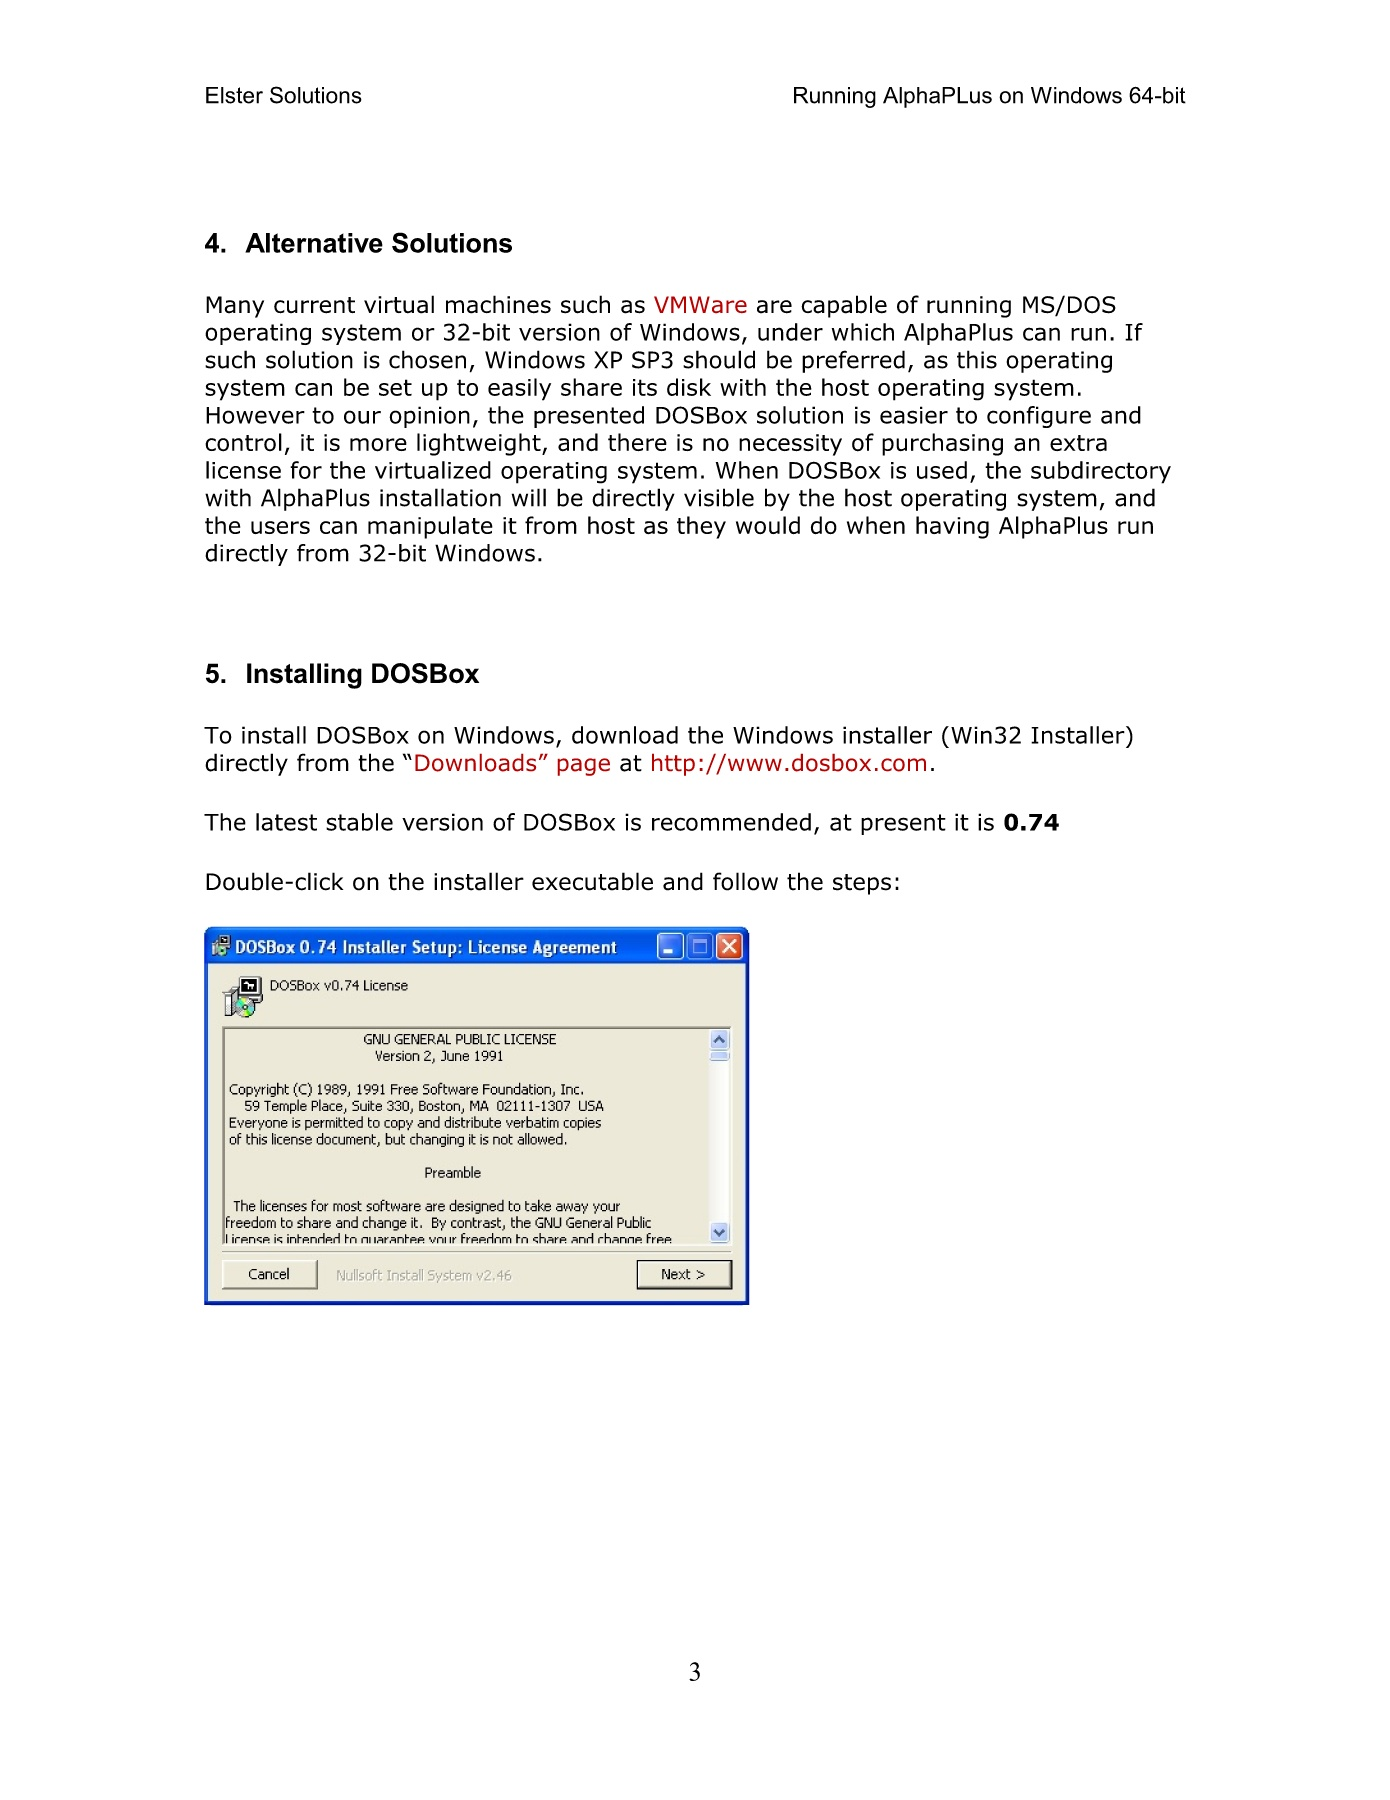 231609069-Running-AlphaPlus-Software-on-Windows-64 Pages 1 - 15